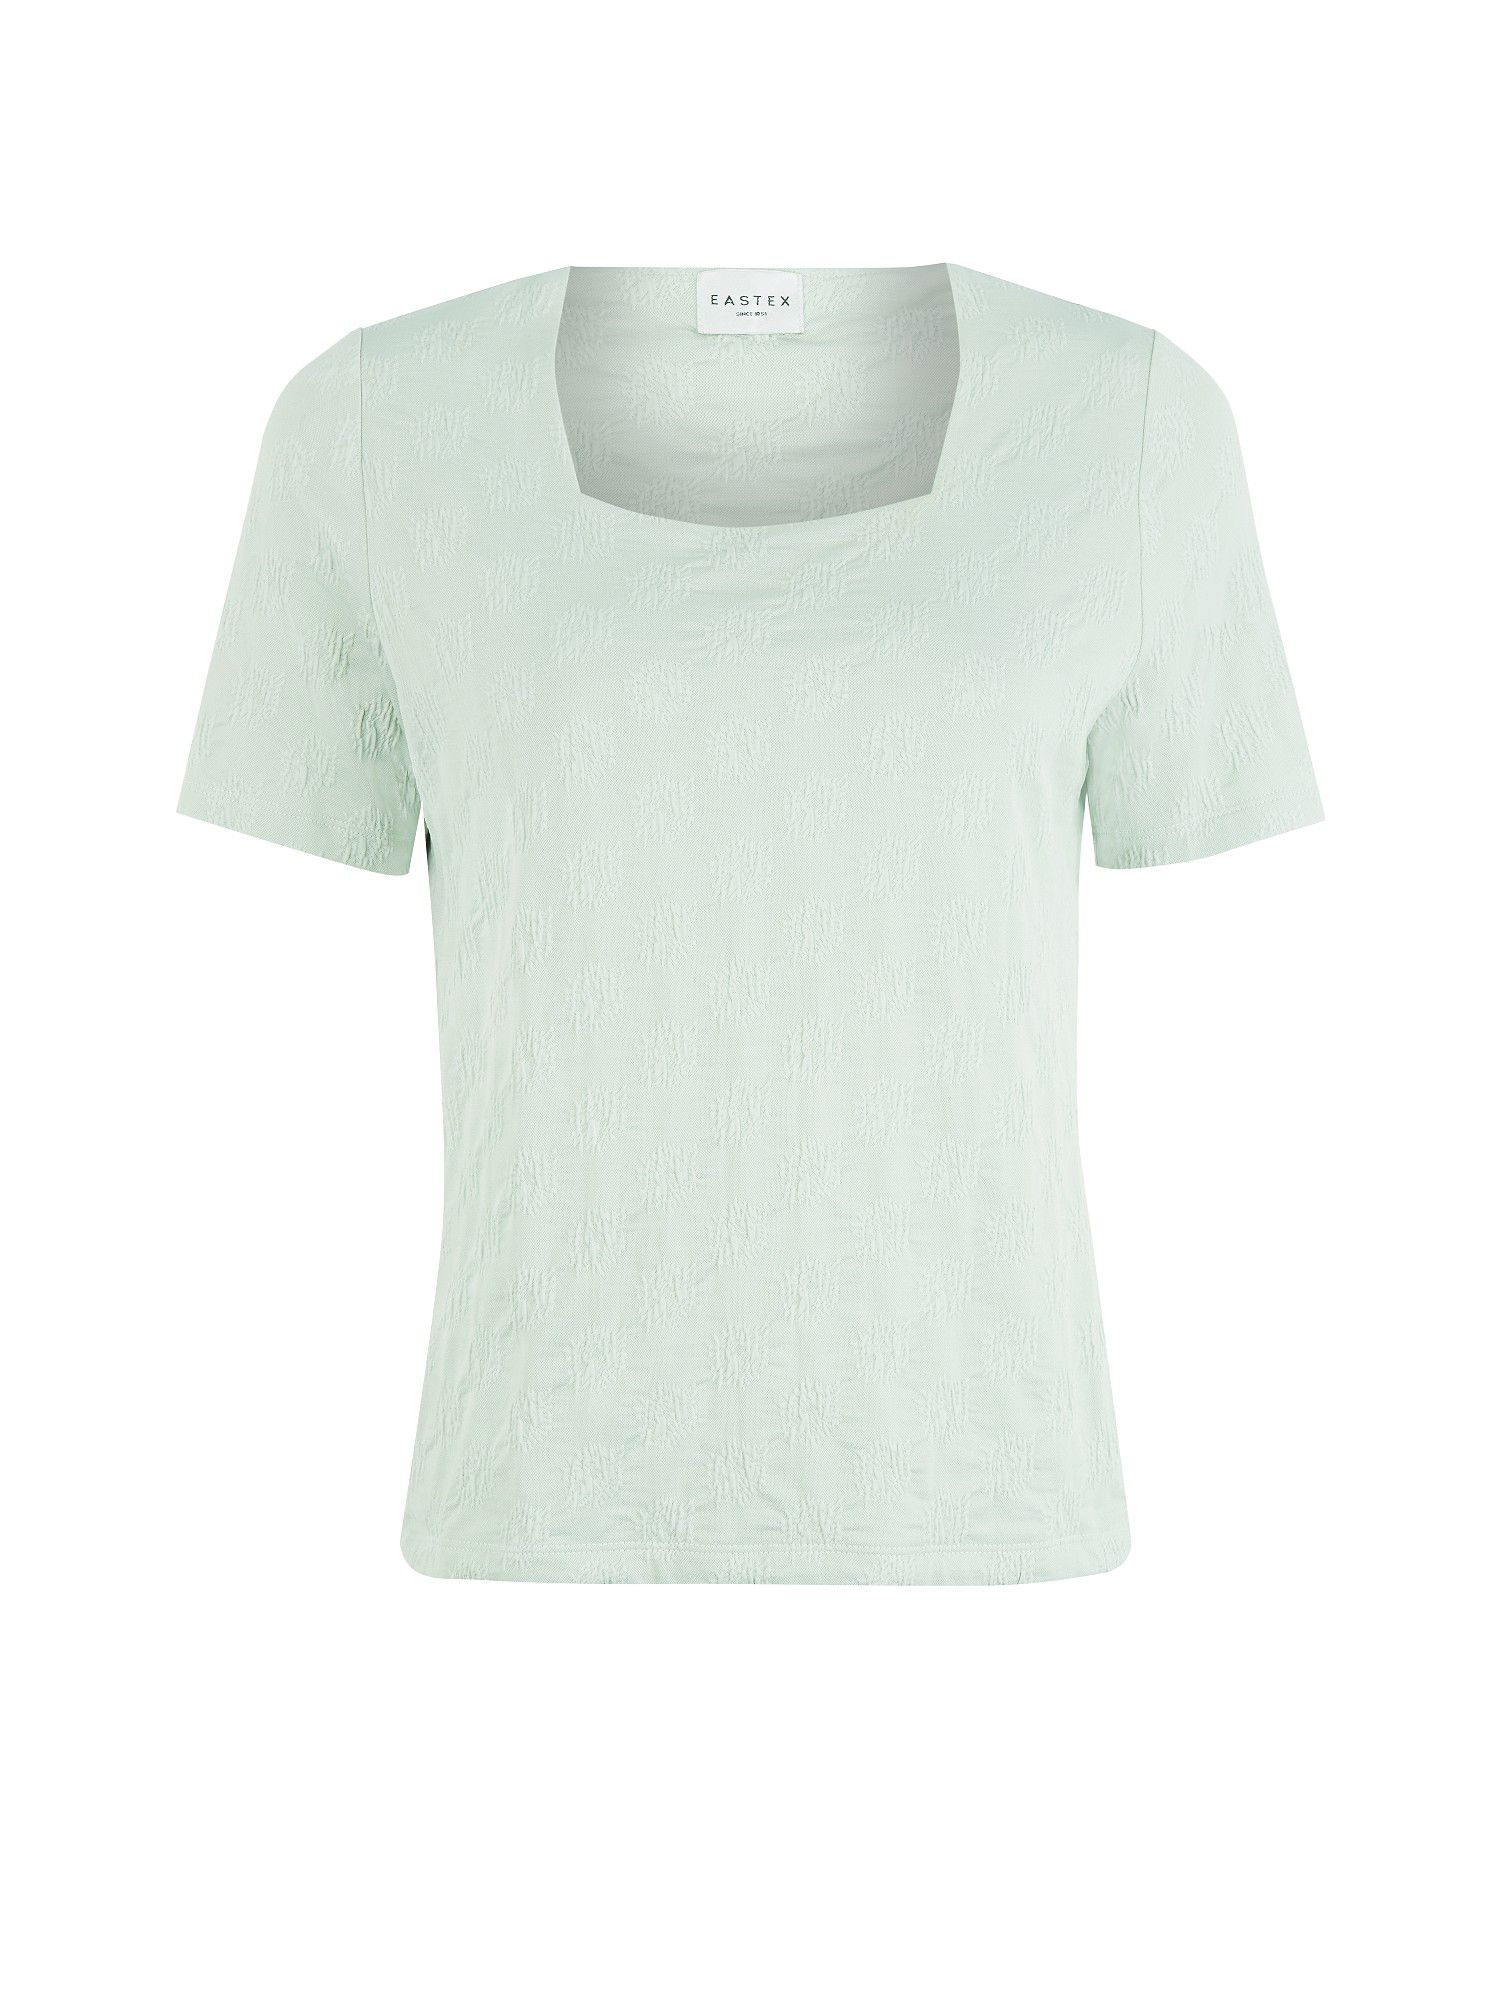 Misty green & stone starburst top